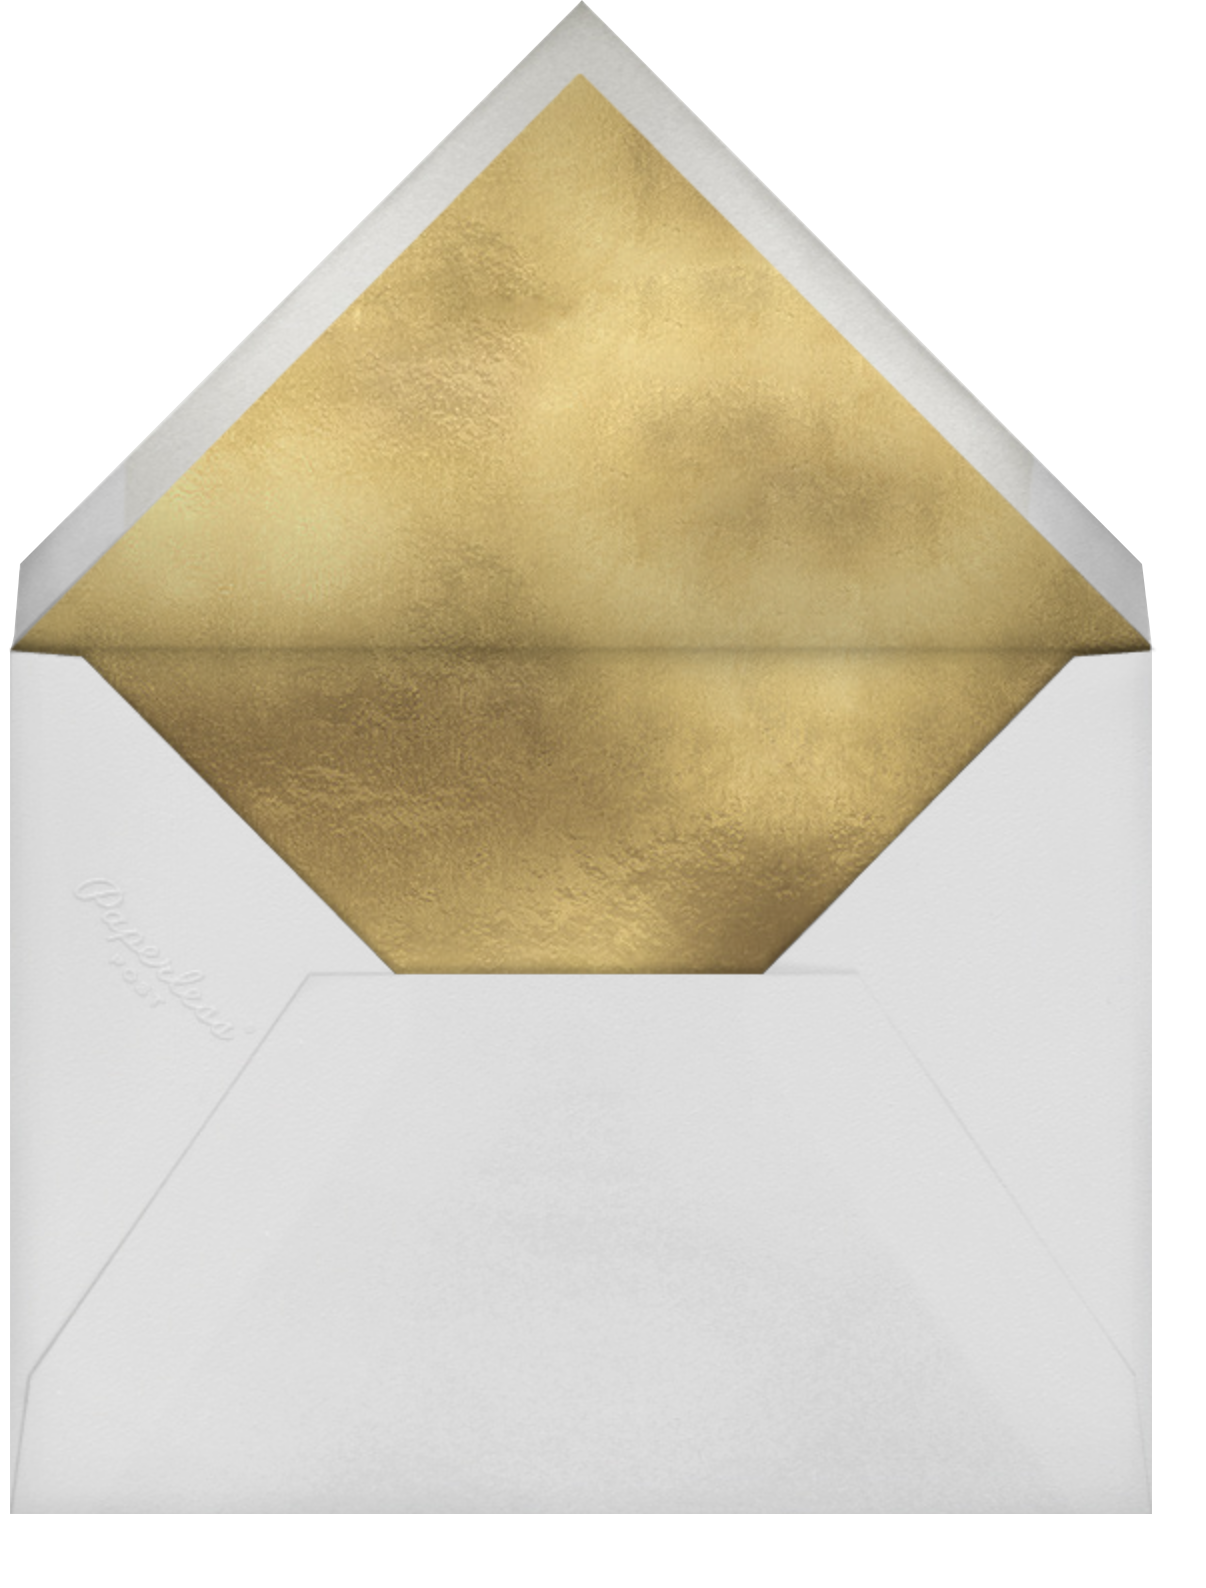 Merry Florals - Mr. Boddington's Studio - Christmas party - envelope back